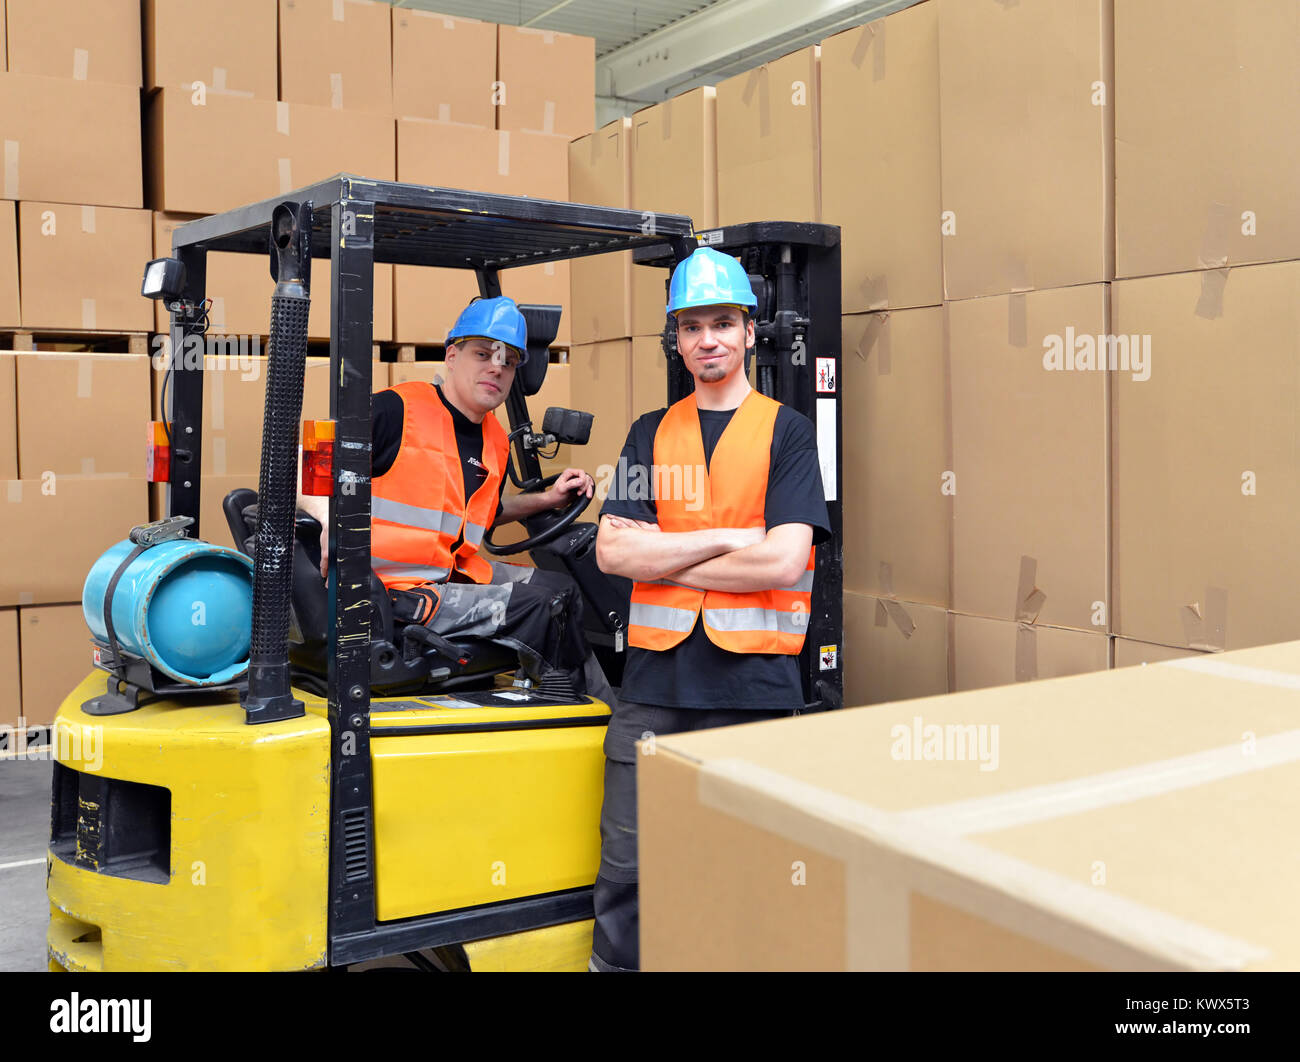 forklift trucks stock photos forklift trucks stock images alamy. Black Bedroom Furniture Sets. Home Design Ideas